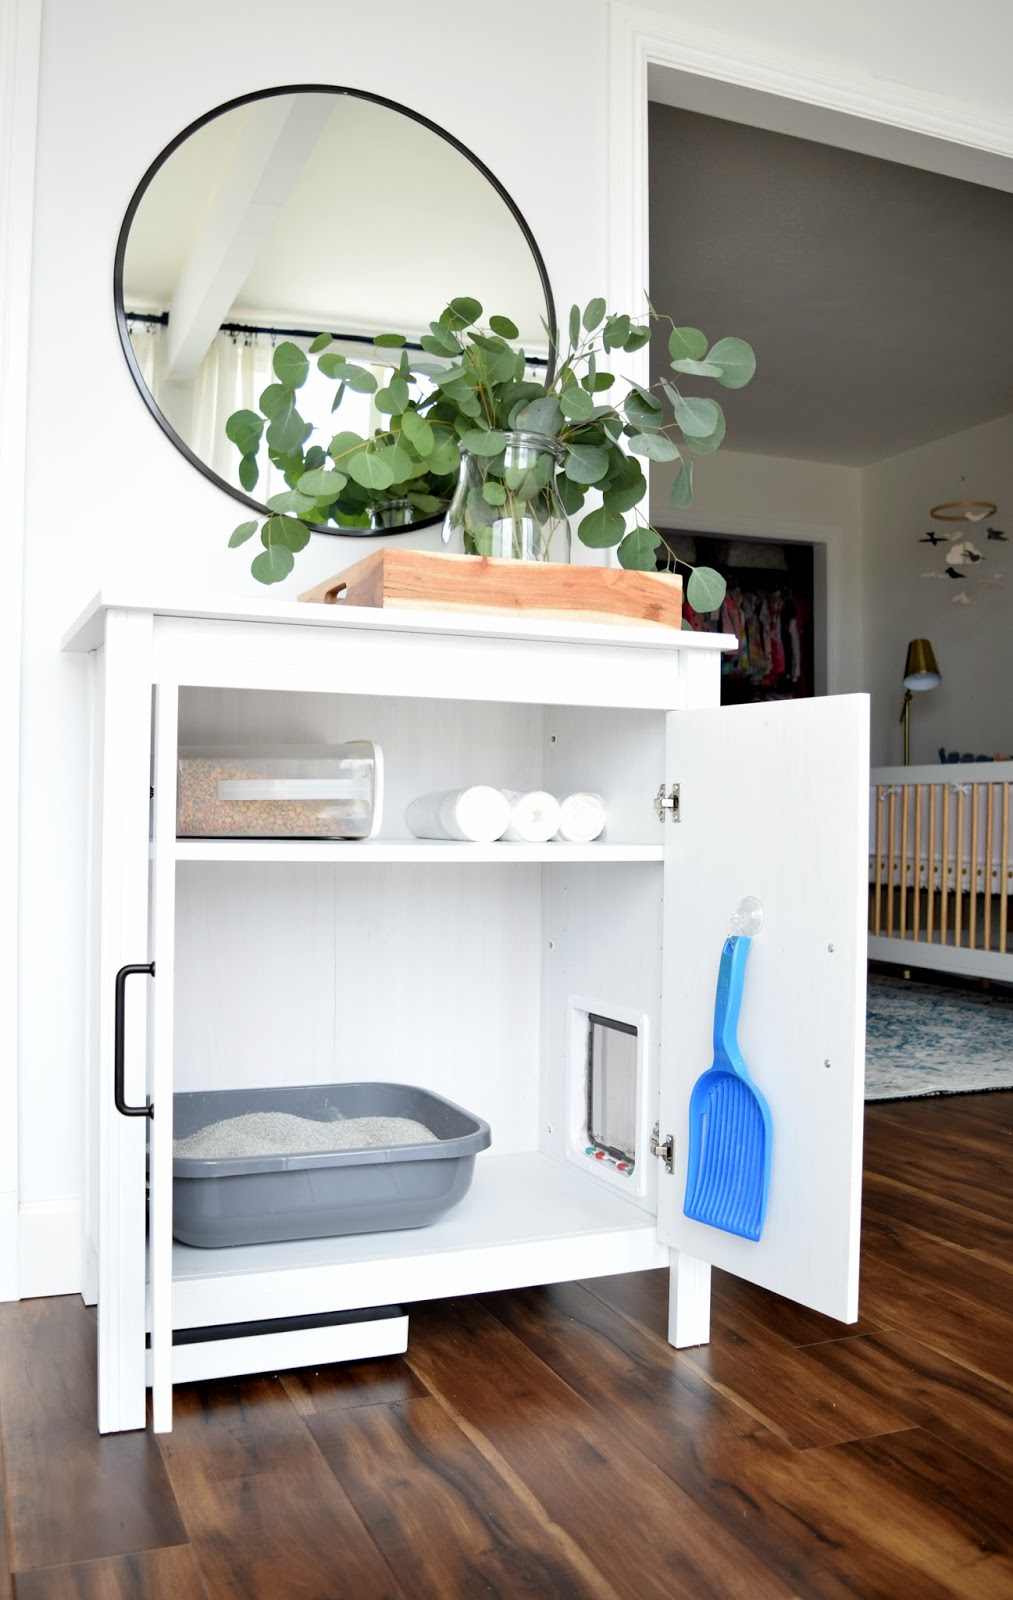 DIYing Our Cat Litter Cabinet Was Super Simple U2013 Just An Extra Large Cat  Door U2013 For Our Extra Large Cat U2013 And This Inexpensive Ikea Cabinet U2013 Or Any  Cabinet ...